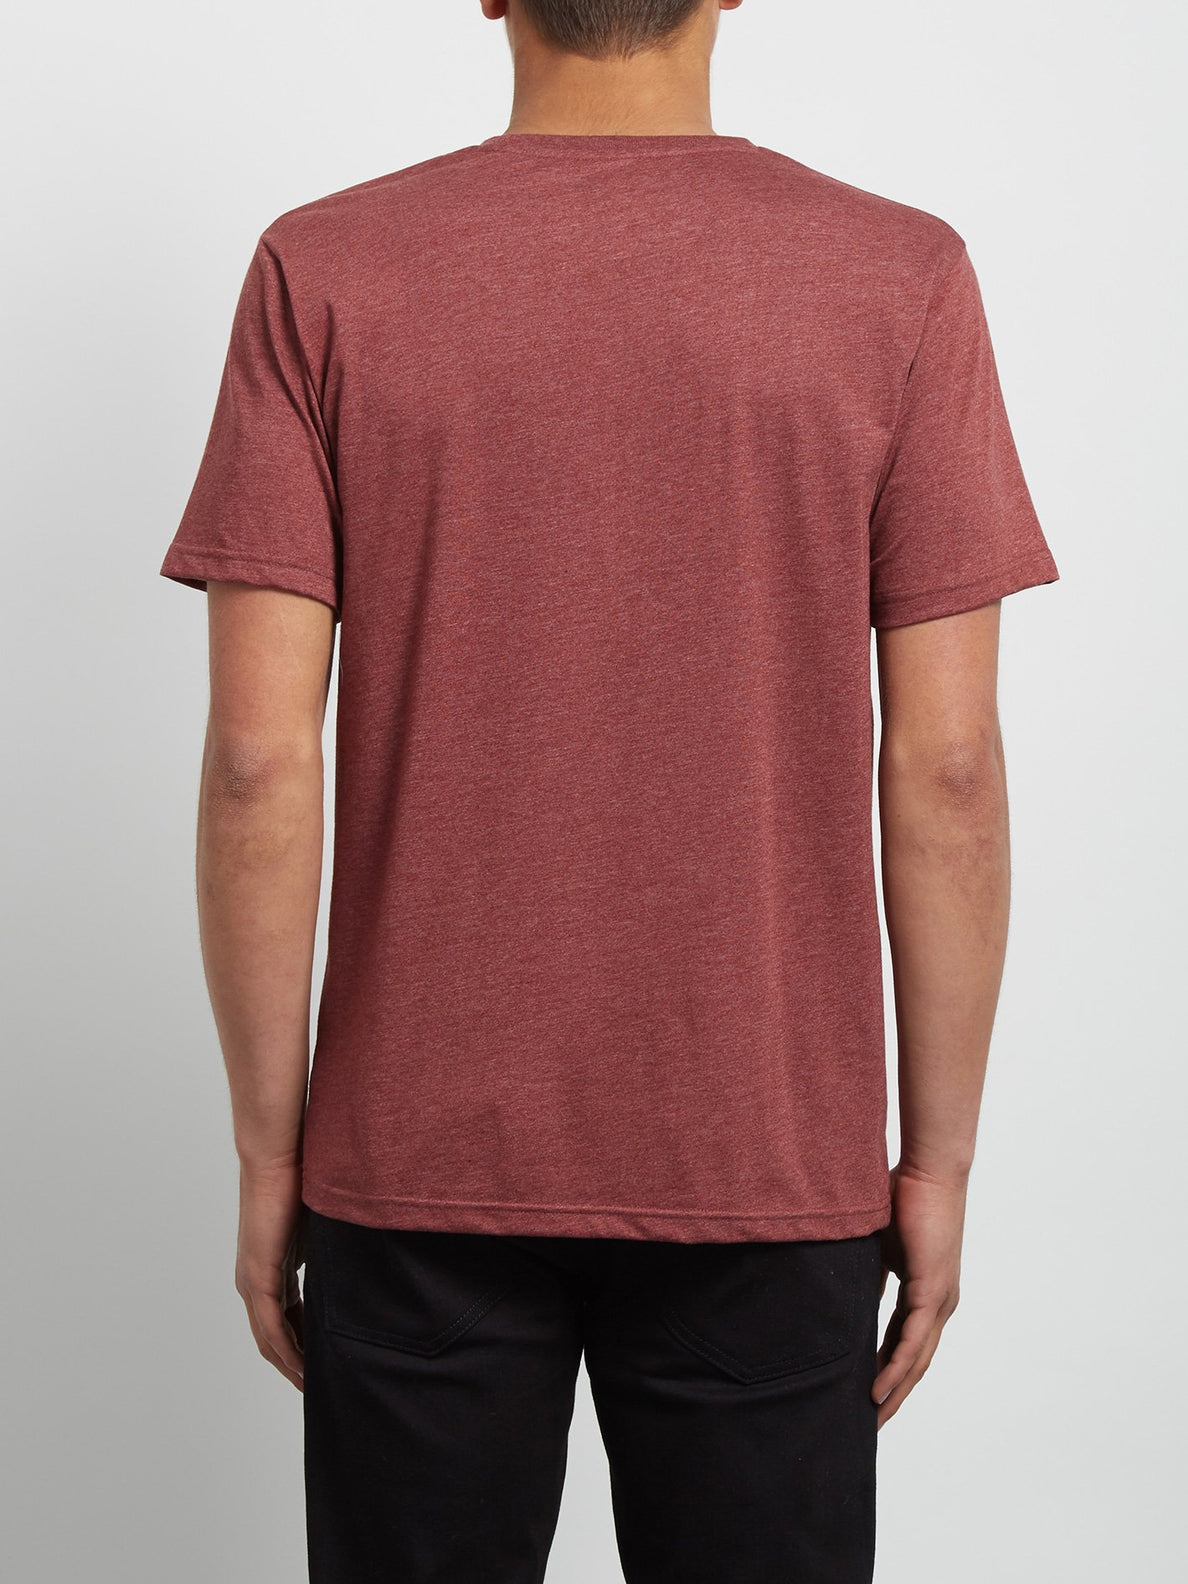 T-Shirt Circle Stone Heather - Crimson